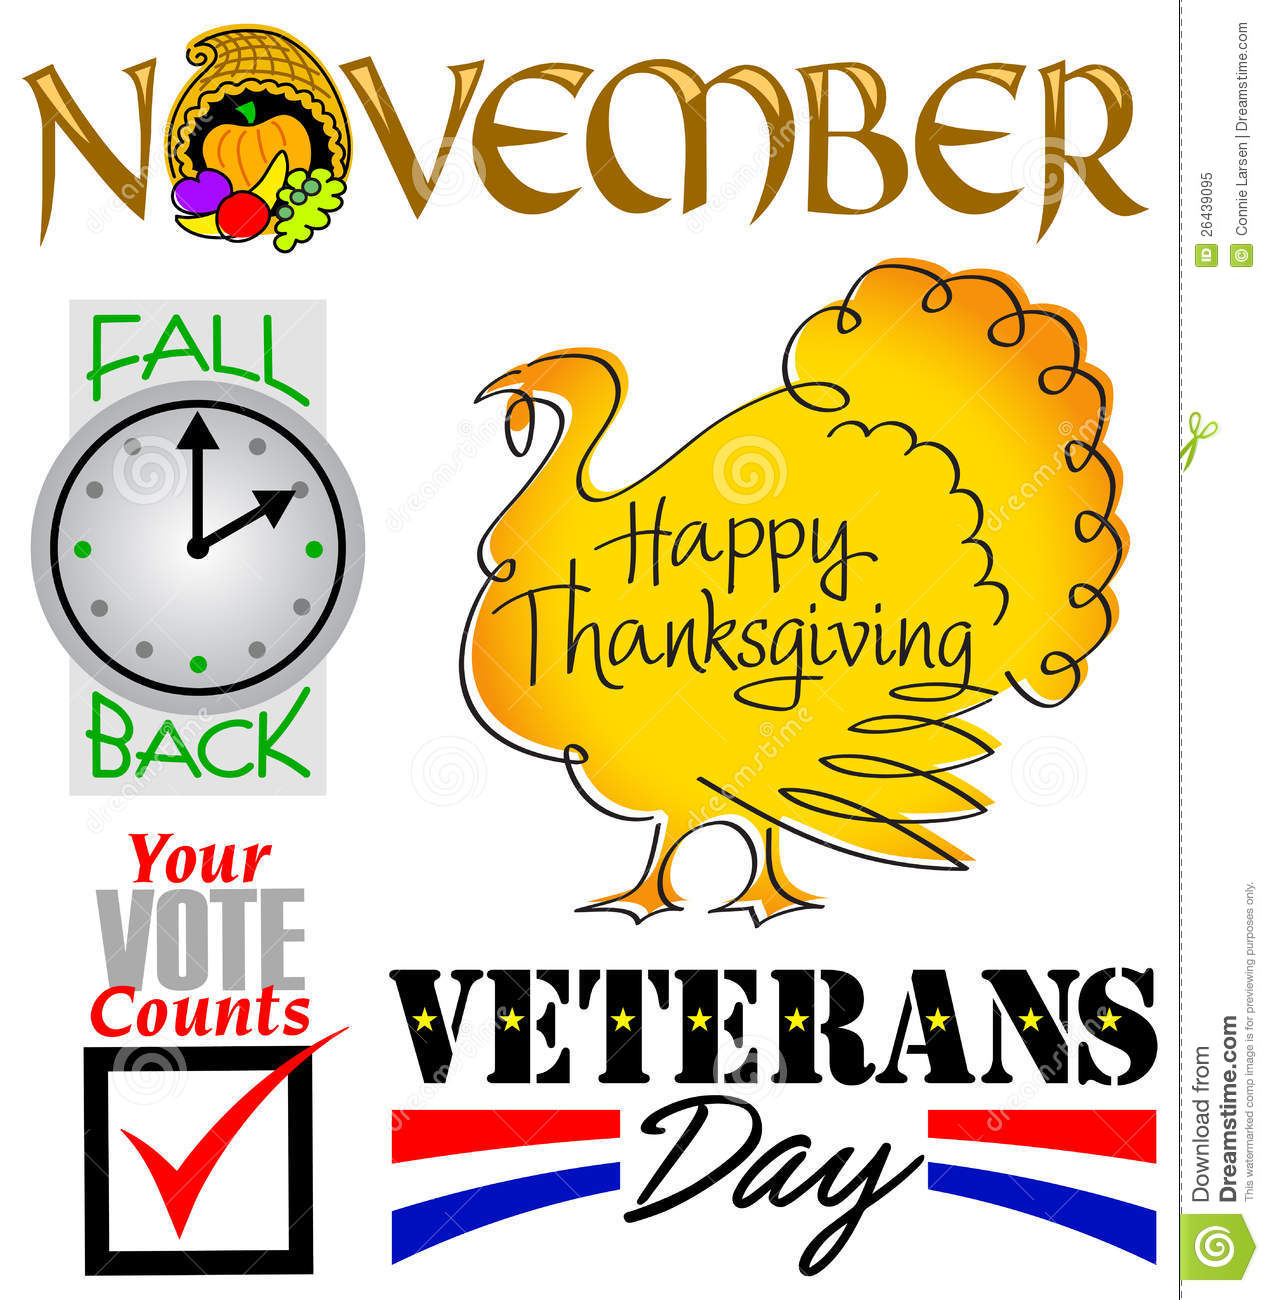 November Events Clip Art Set Eps Royalty Free Stock Photo   Image